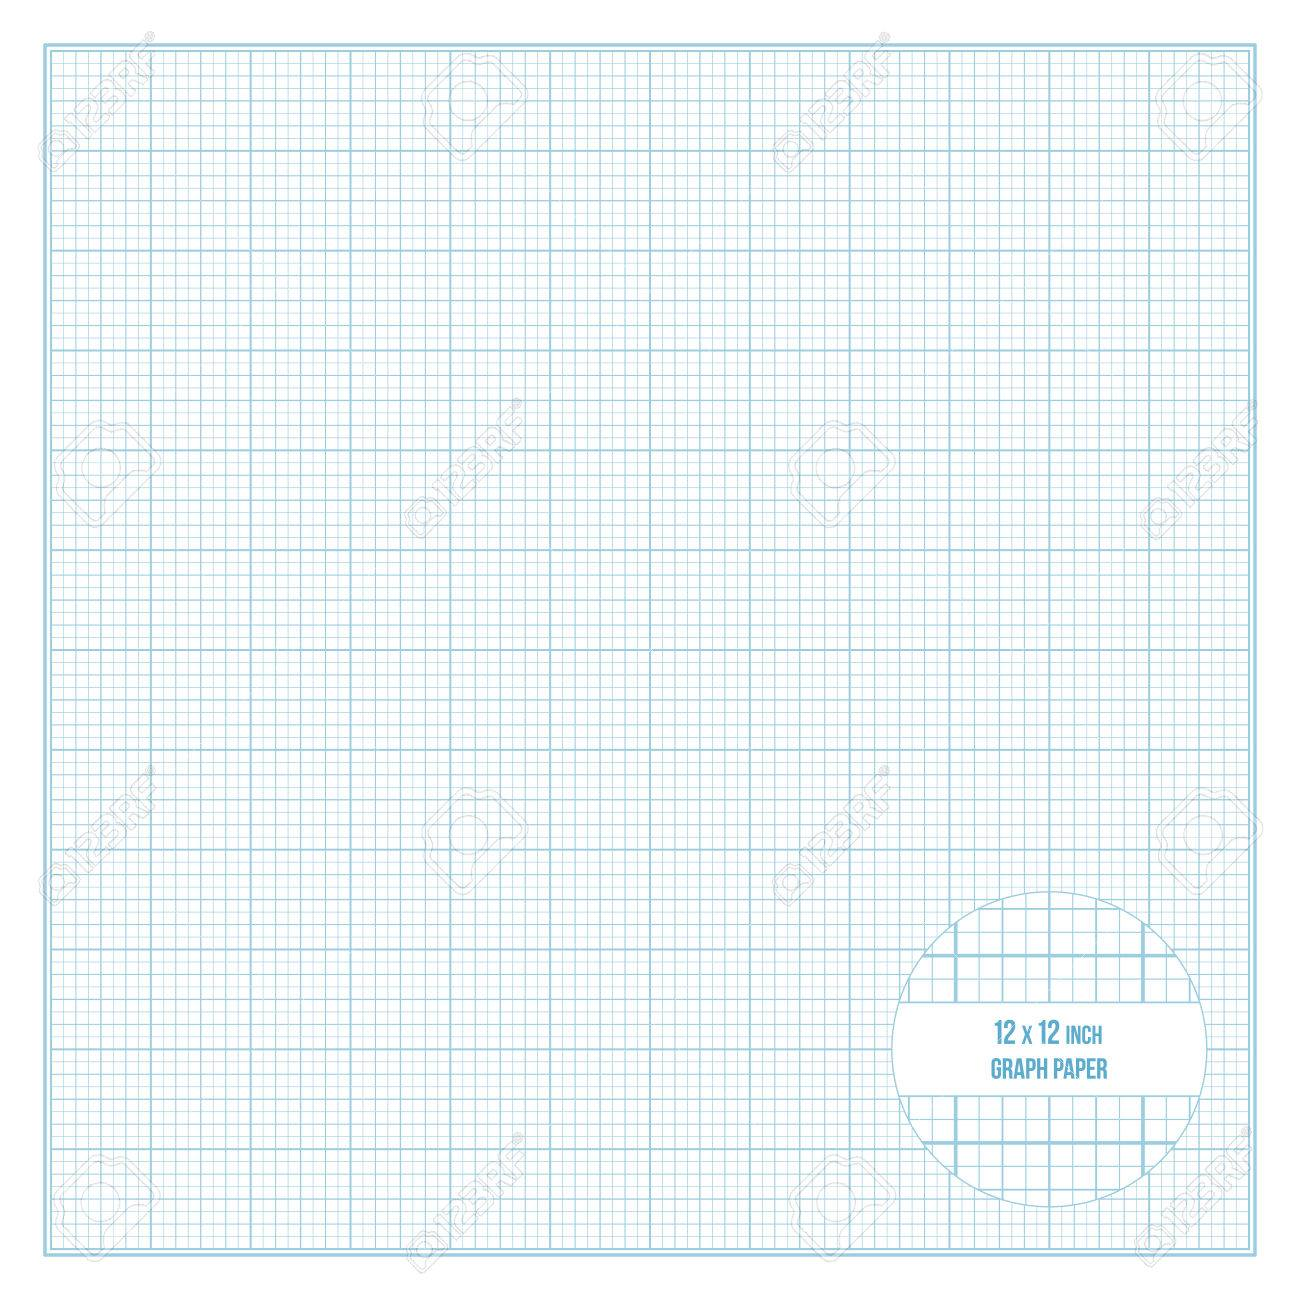 worksheet Printable Graphing Paper vector blue printable graph paper 12x12 inch size grid accented every stock vector